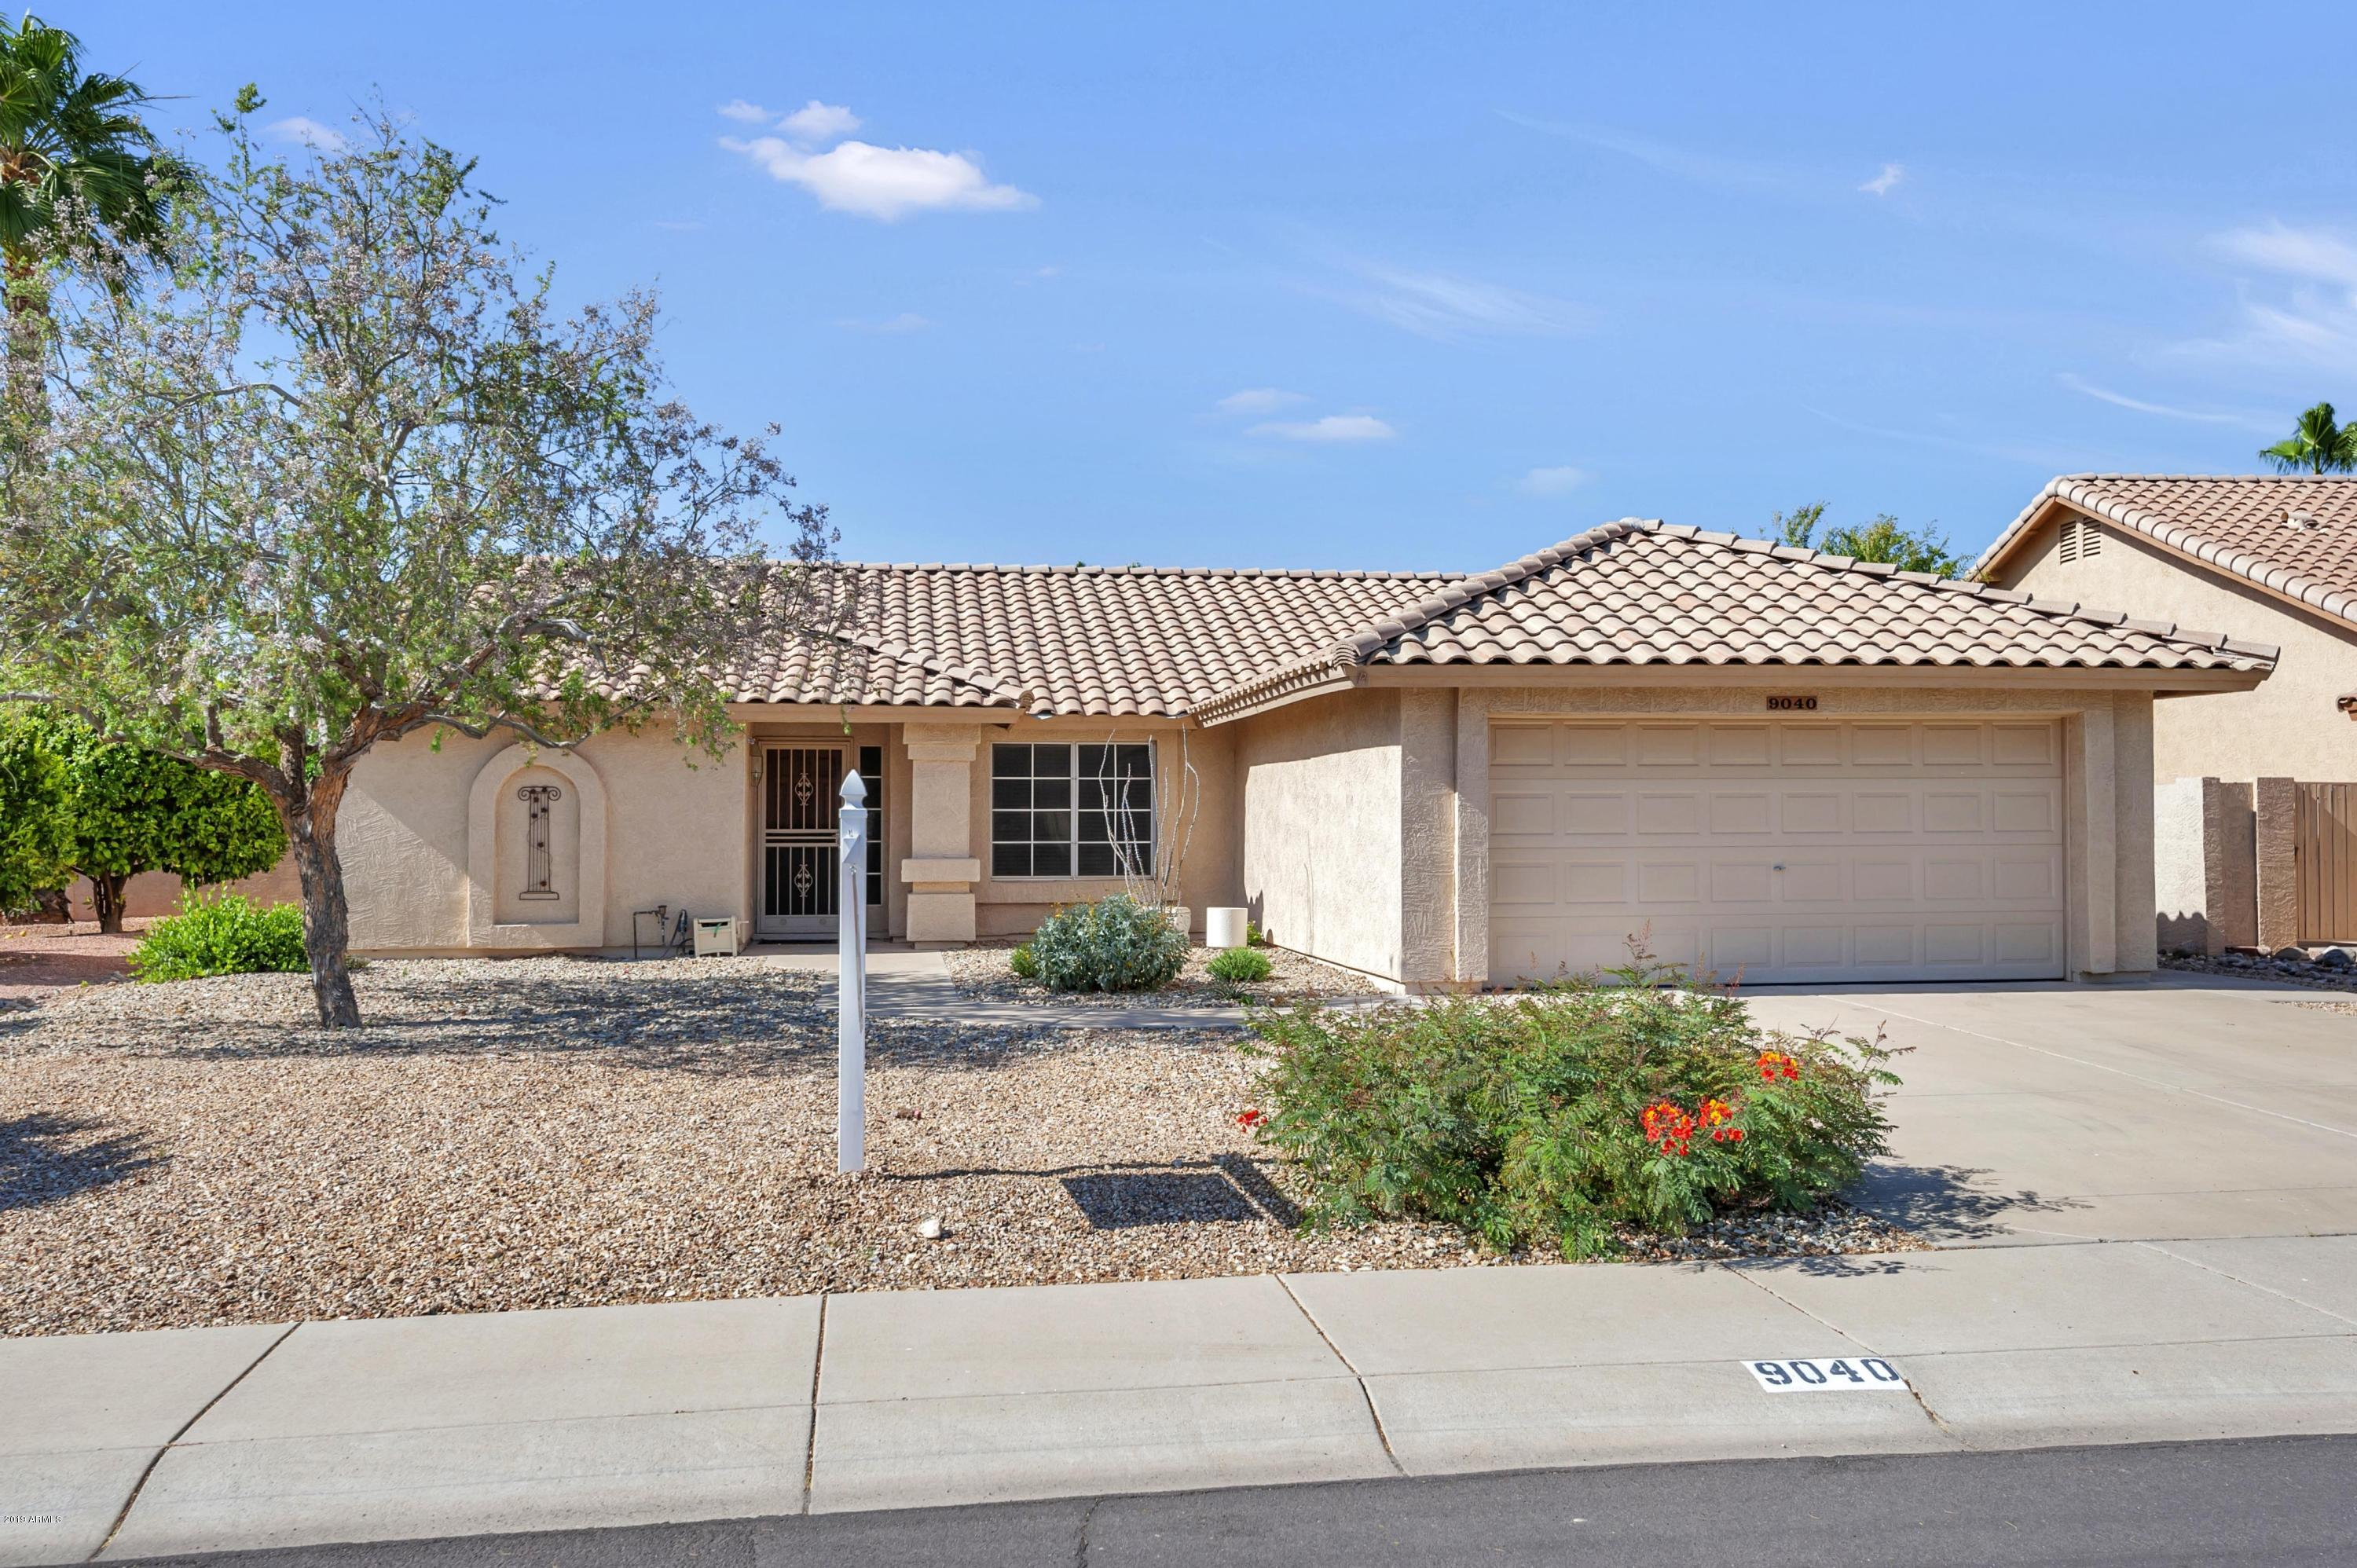 9040 W RIMROCK Drive, Peoria in Maricopa County, AZ 85382 Home for Sale